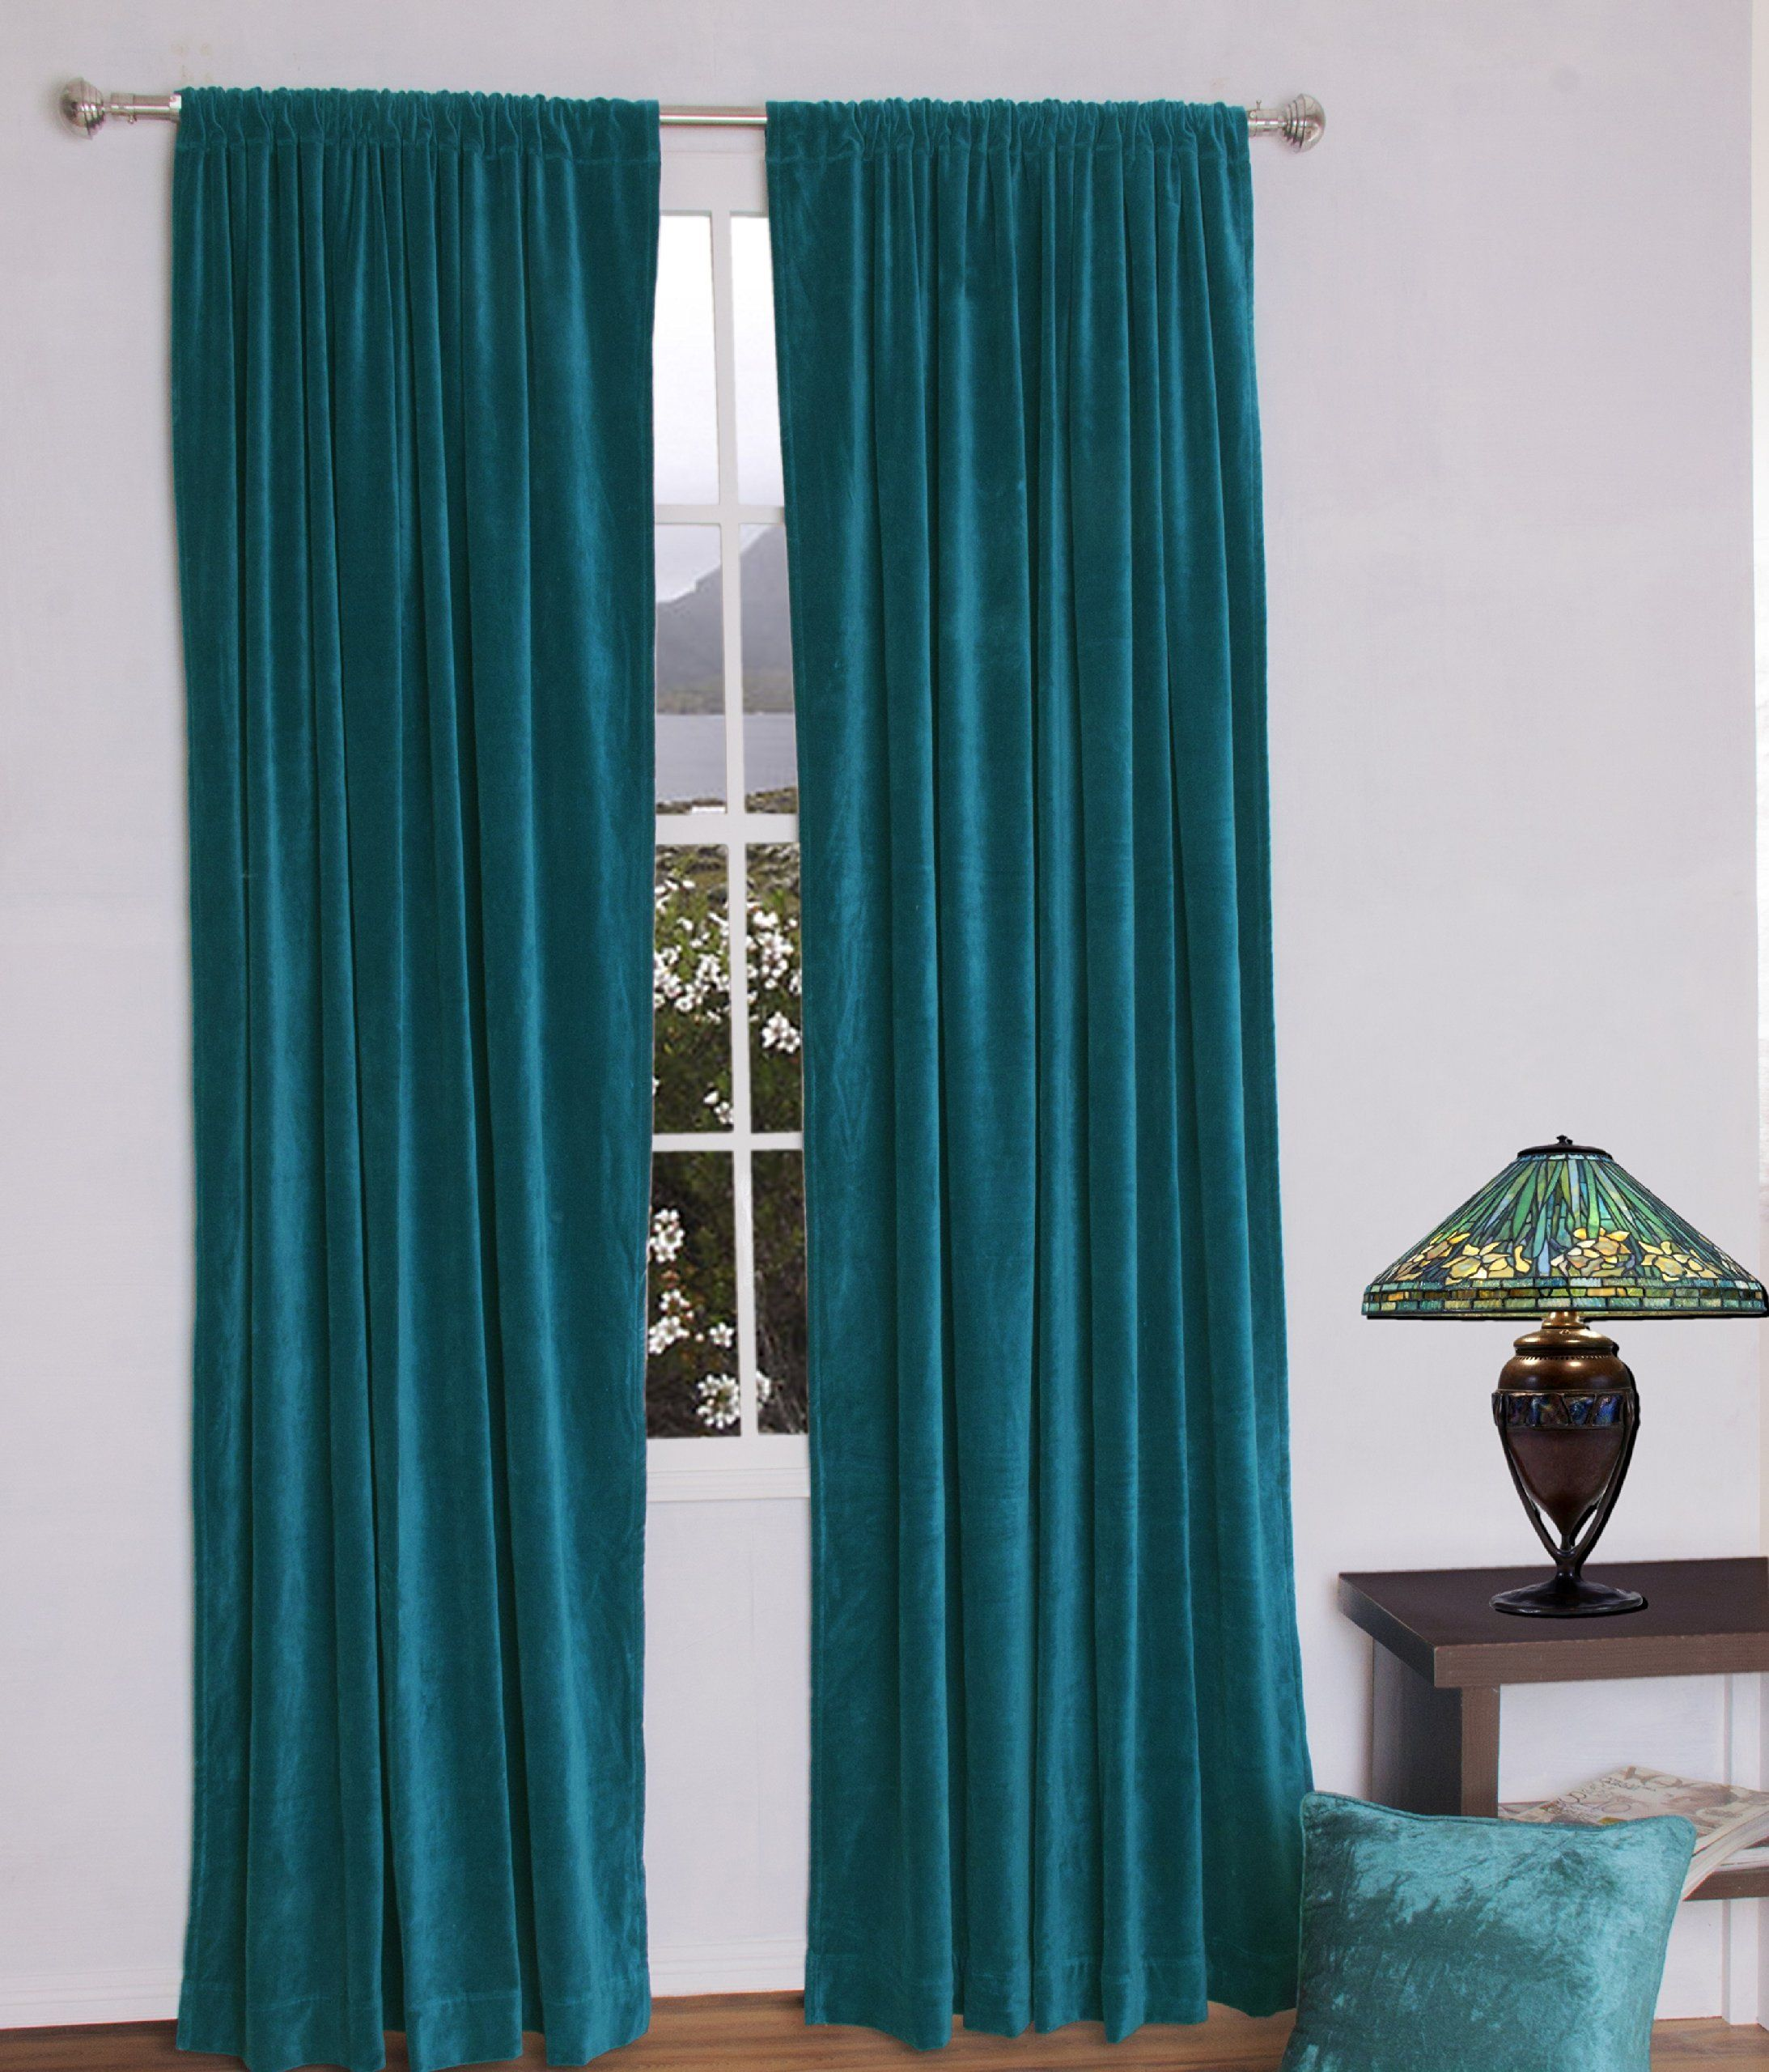 Jovi Home Velvet Window Curtain 52 by 96 Inch Teal